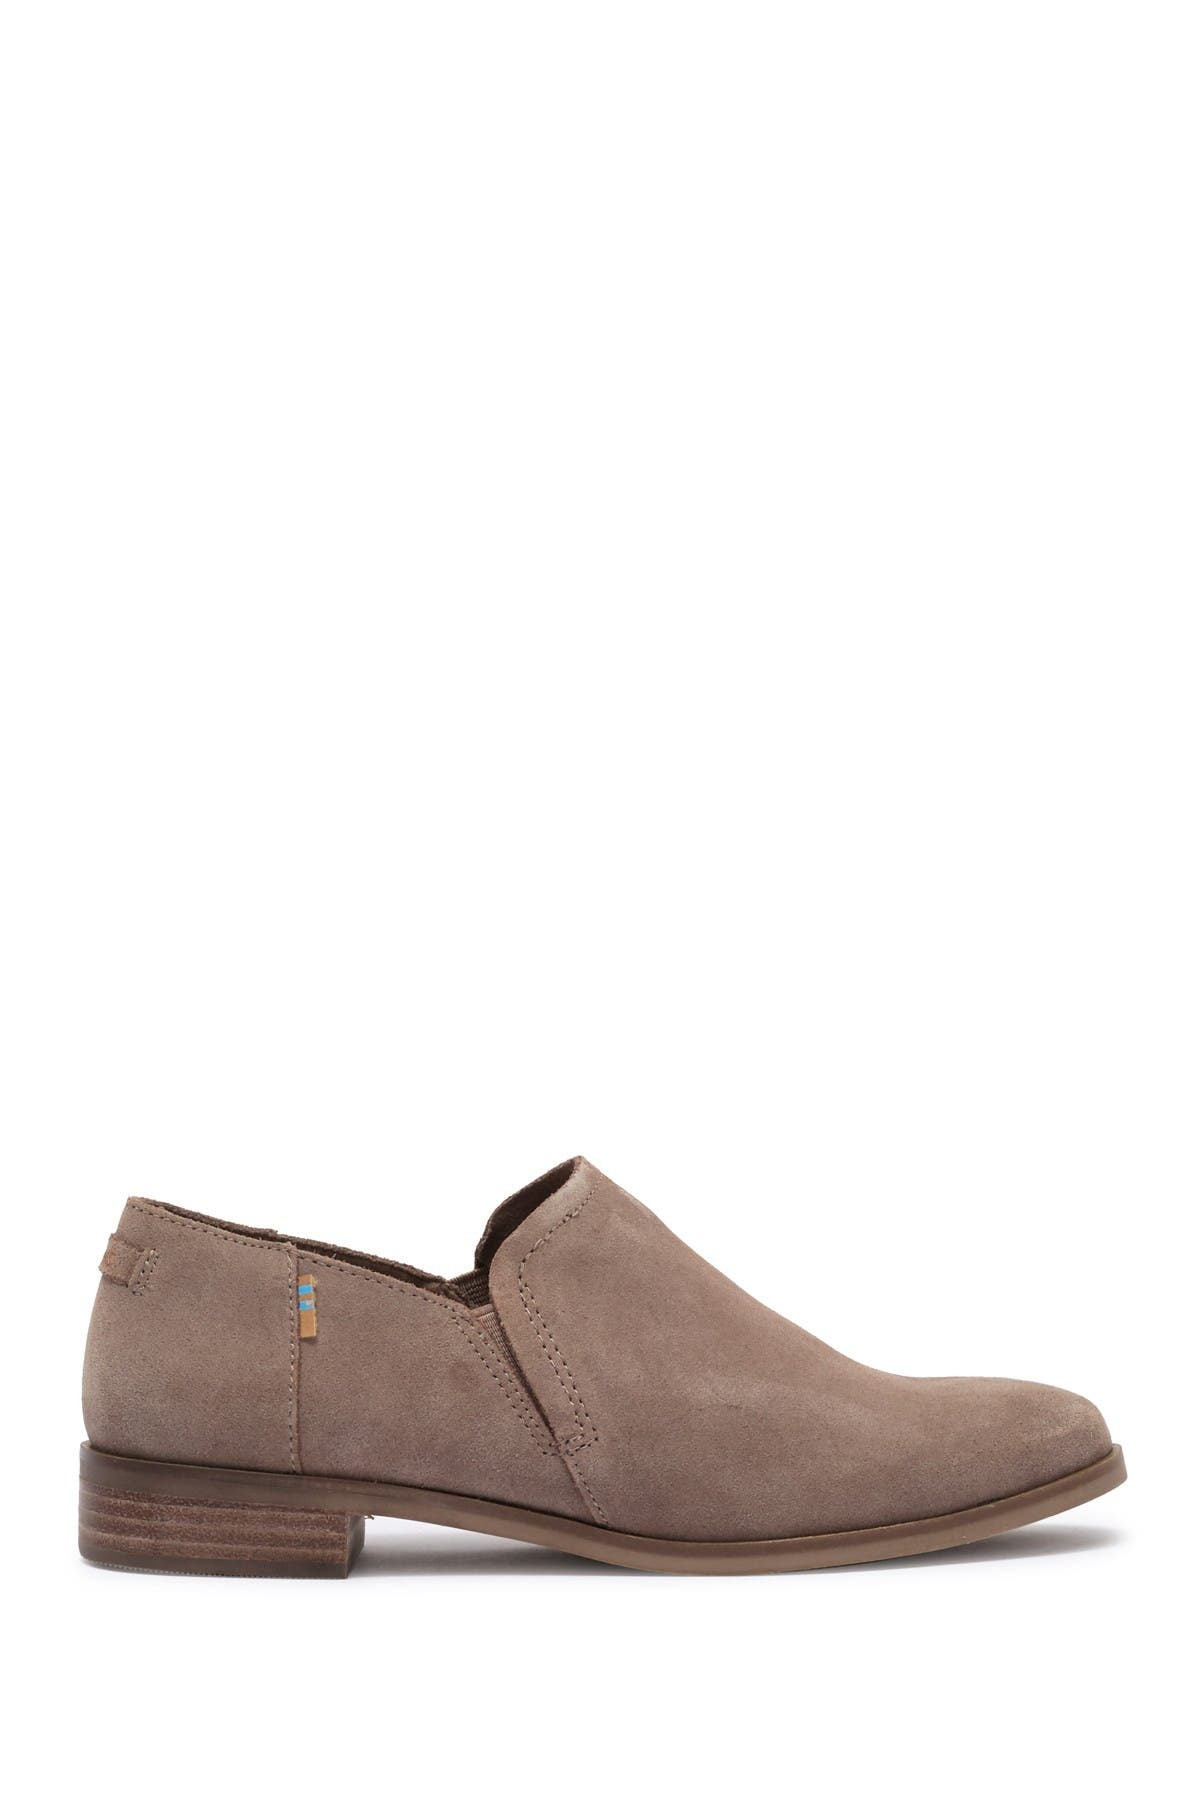 Image of TOMS Shayne Low Bootie